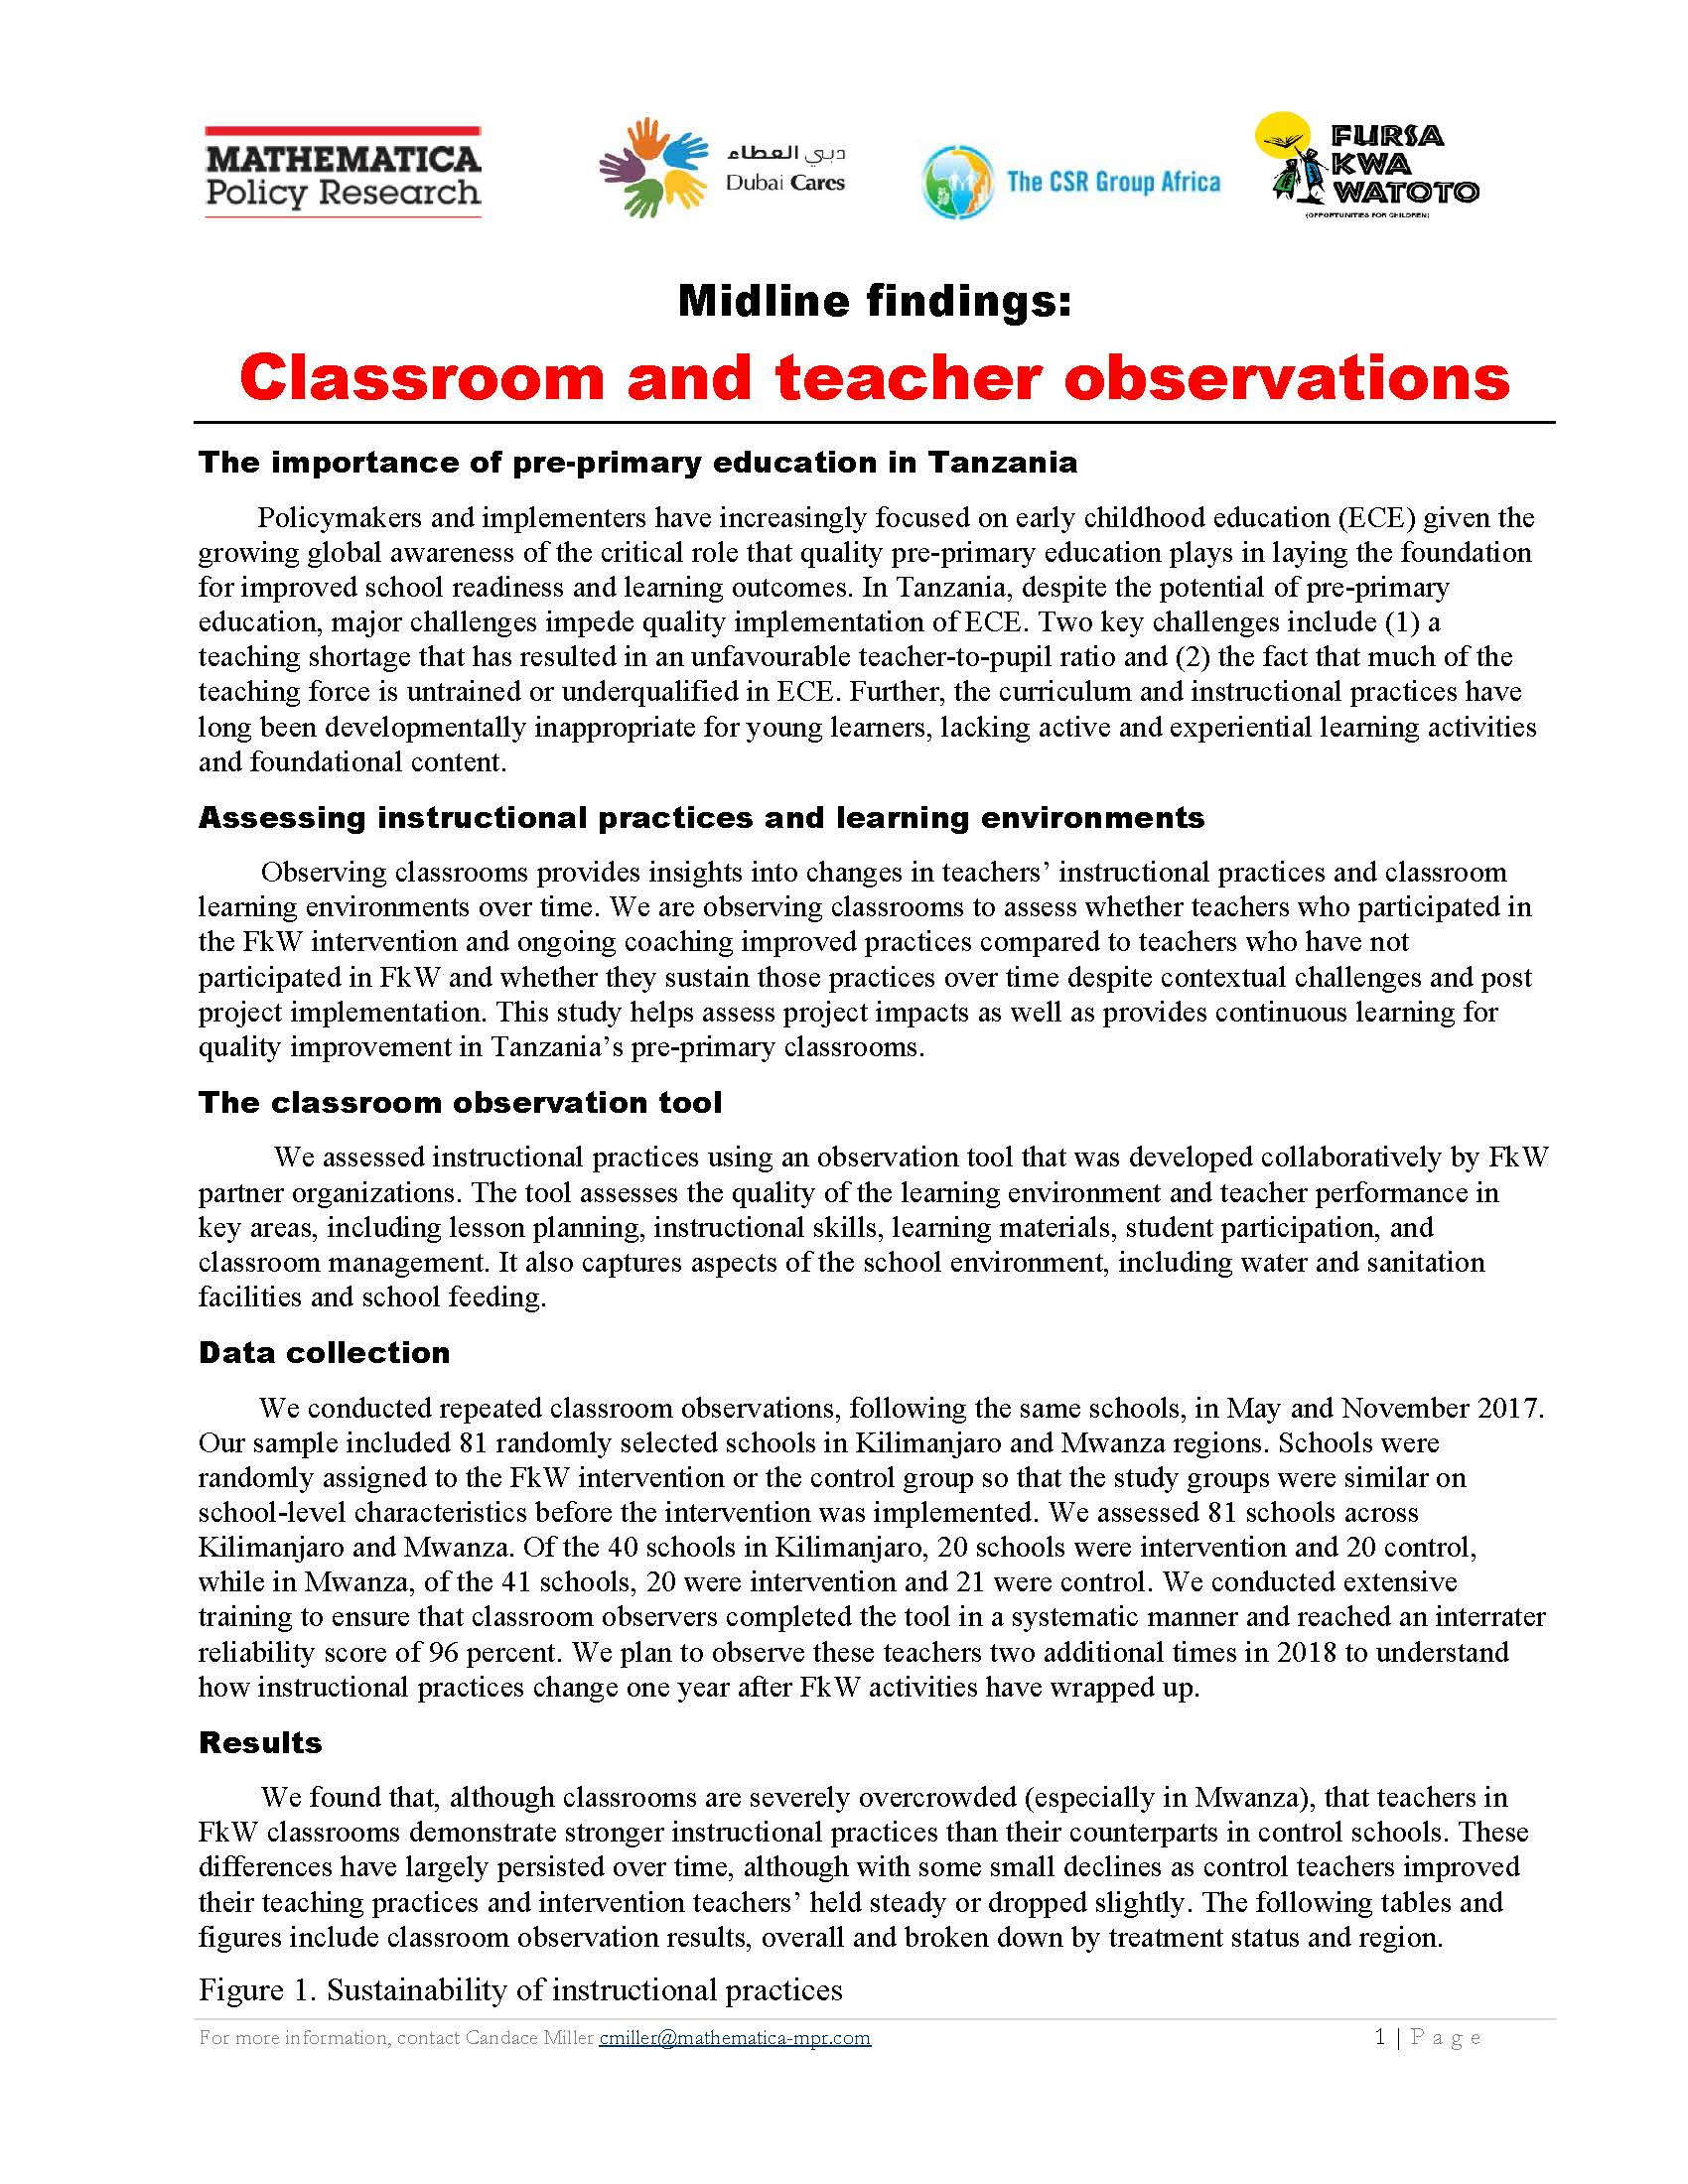 Classroom Observation Results Tables: Sustainability - Learning Agenda